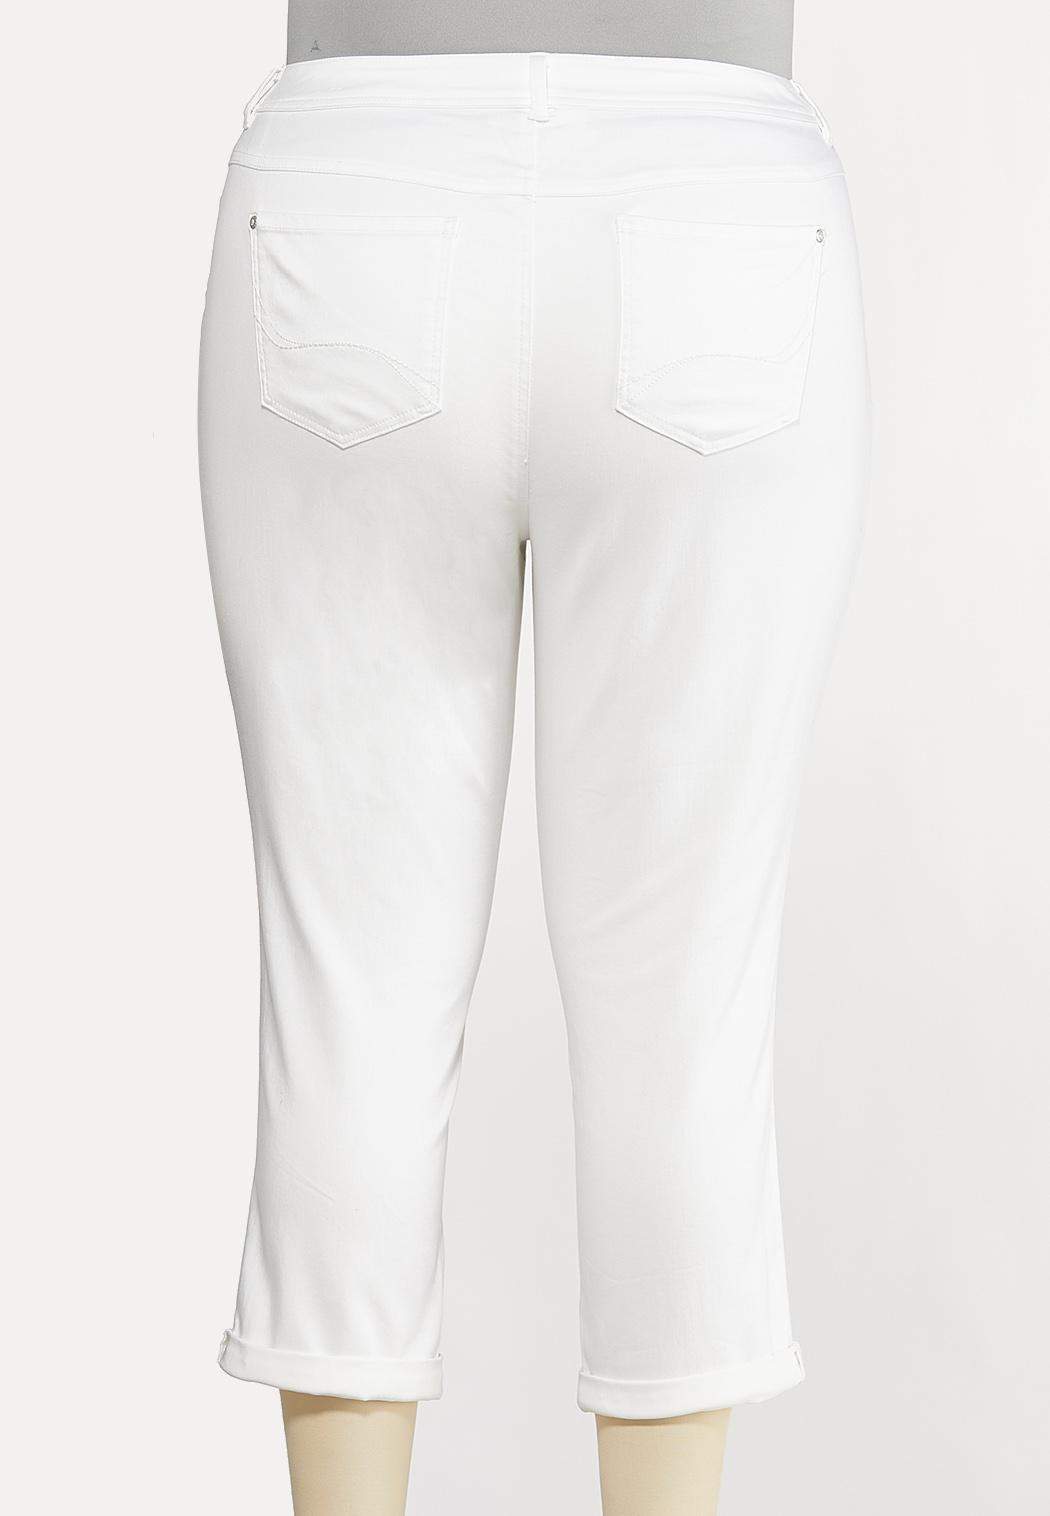 Plus Size White Skinny Ankle Jeans (Item #44133247)